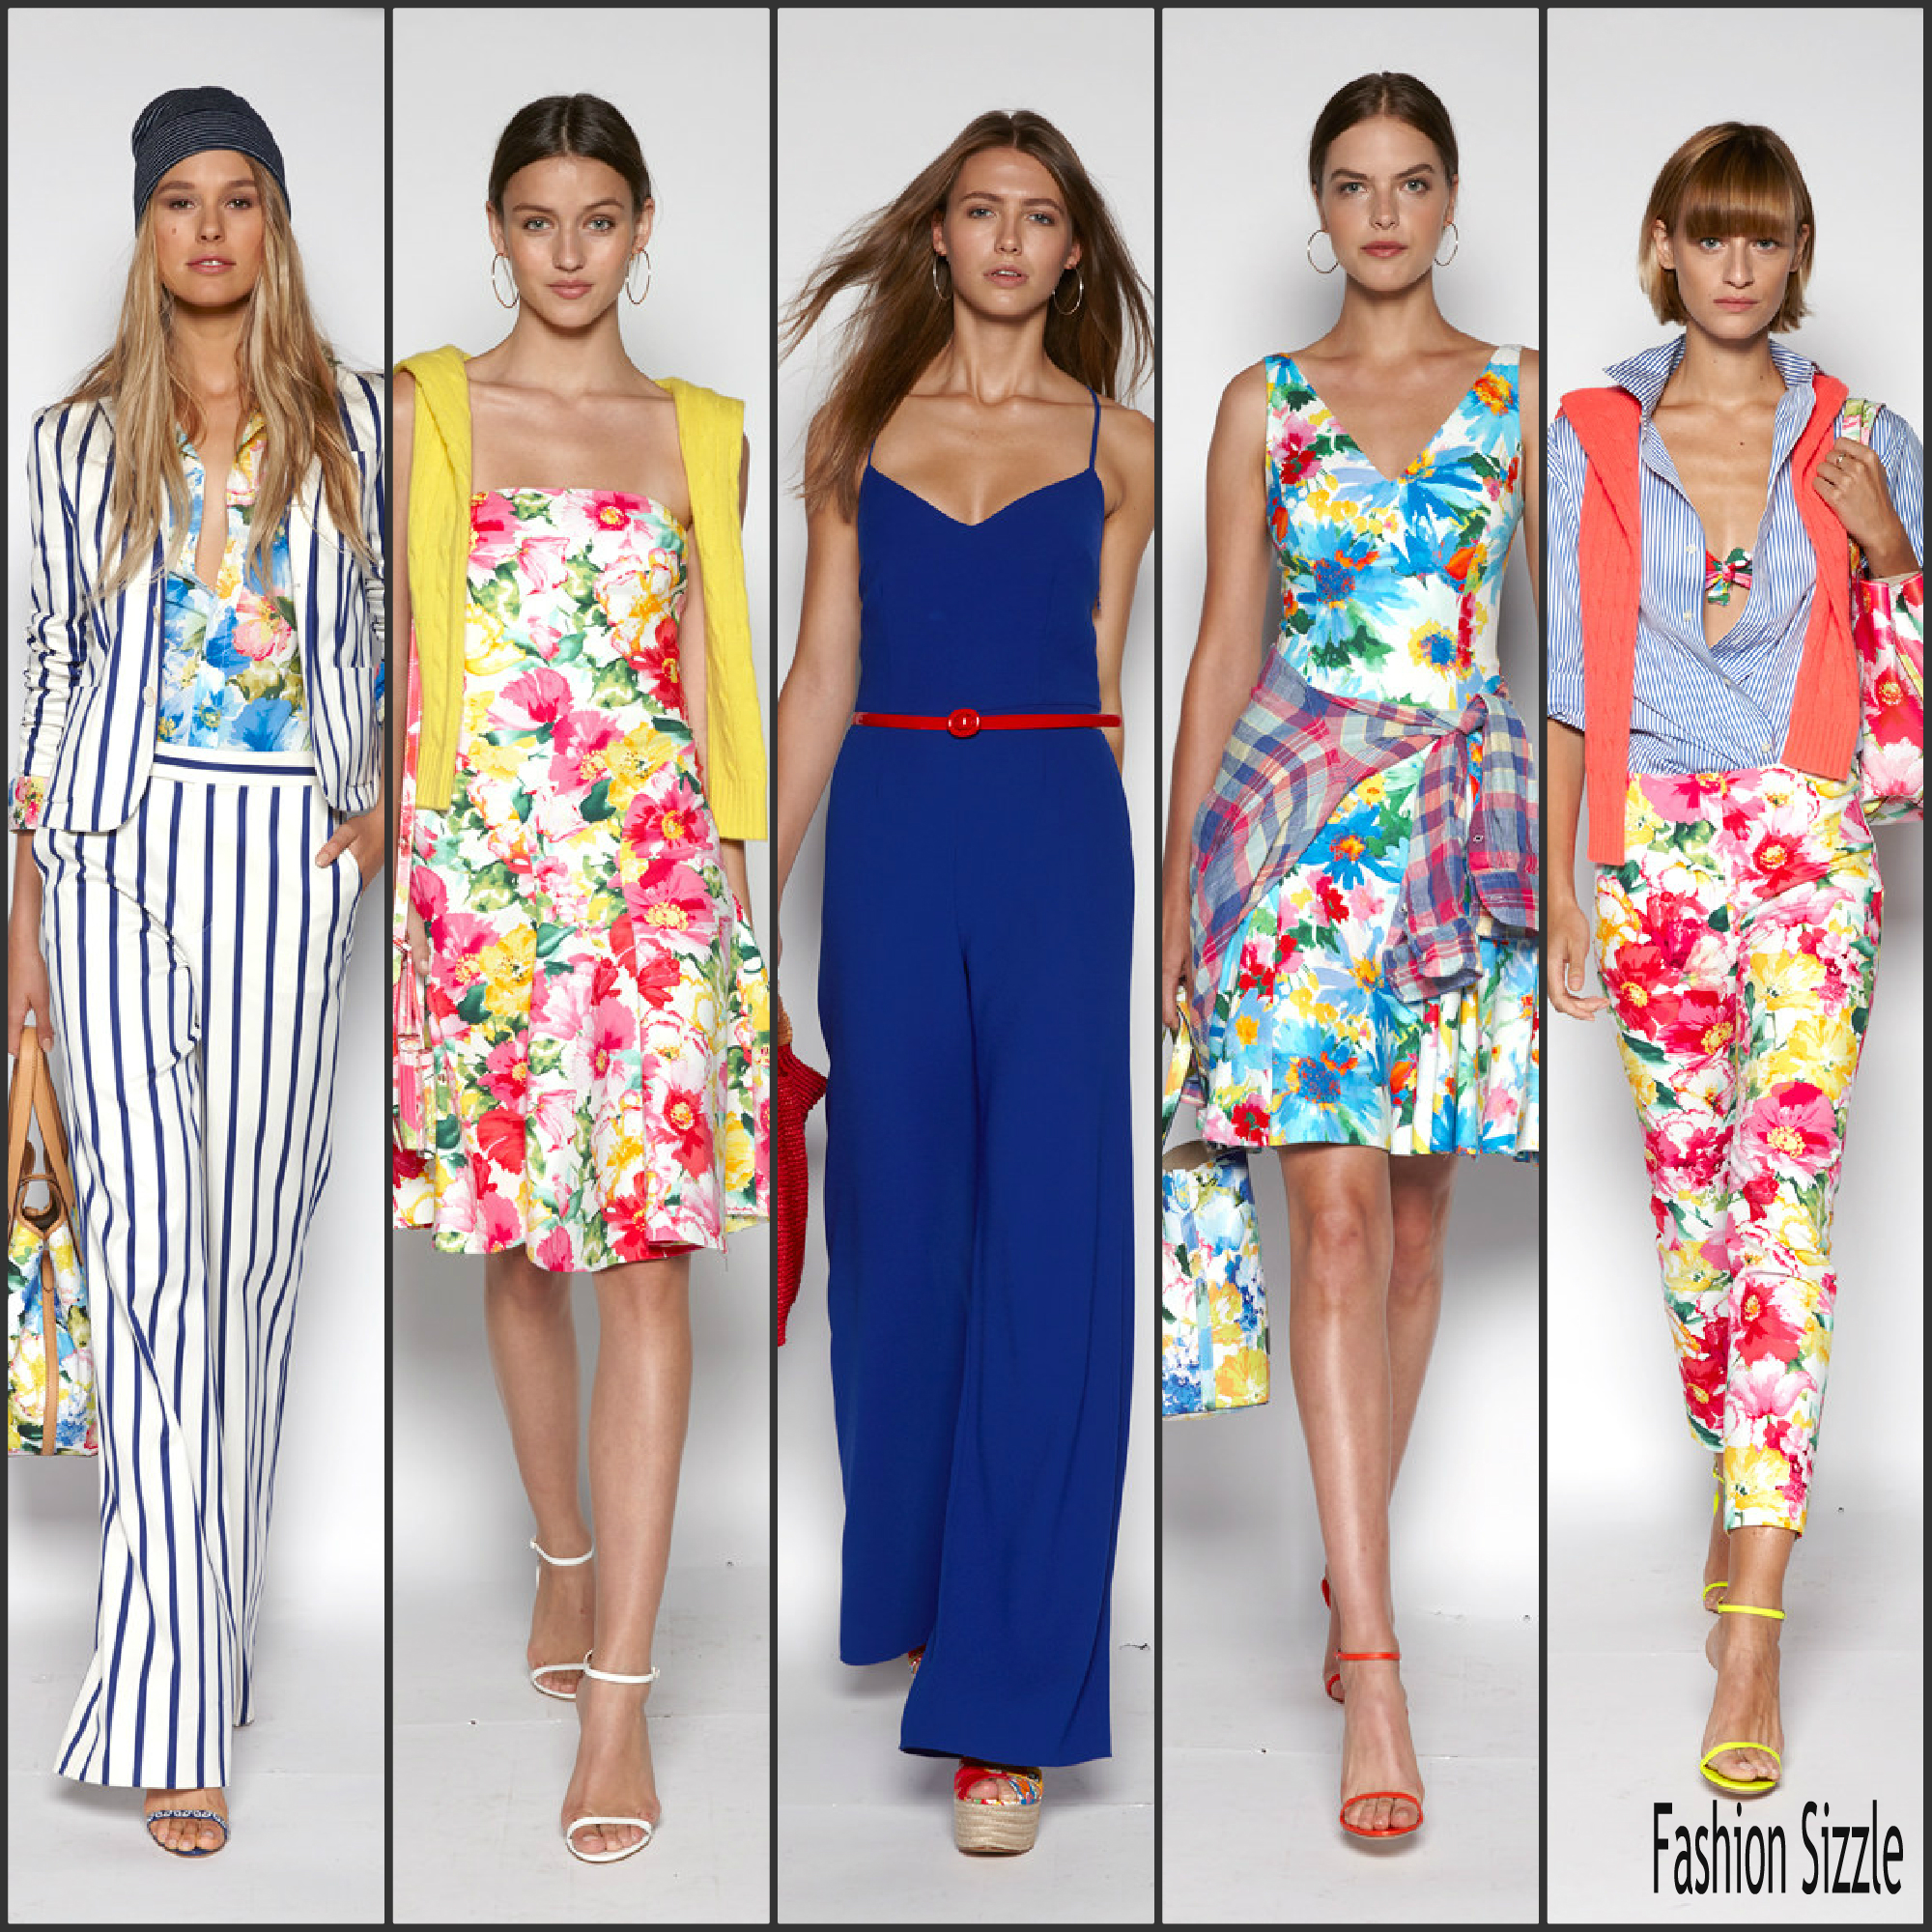 timeless design e7f62 a7fac Polo Ralph Lauren Spring 2016 Collection - Fashionsizzle